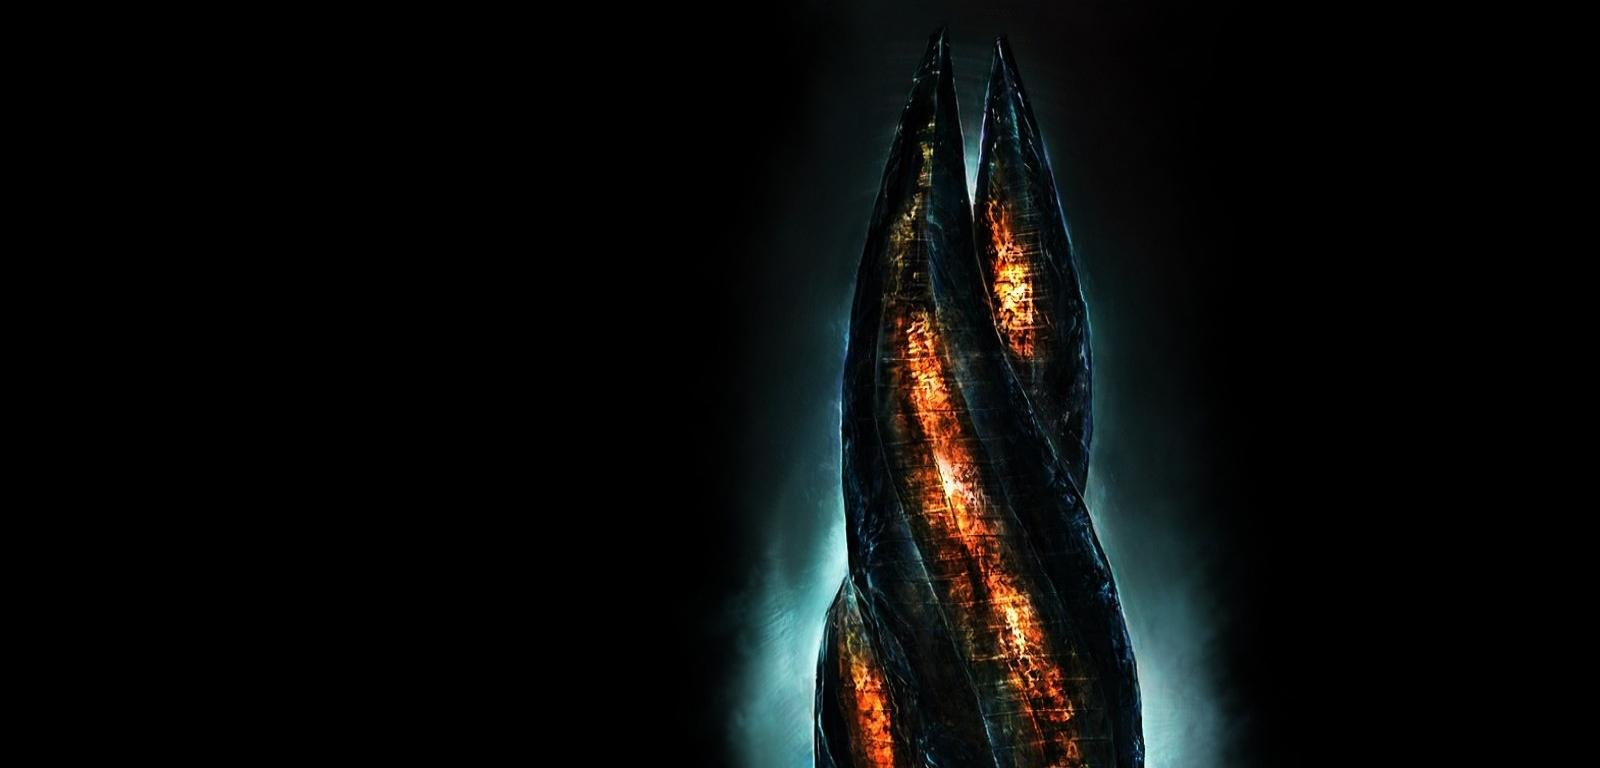 best dead space wallpaper id:211576 for high resolution hd 1600x768